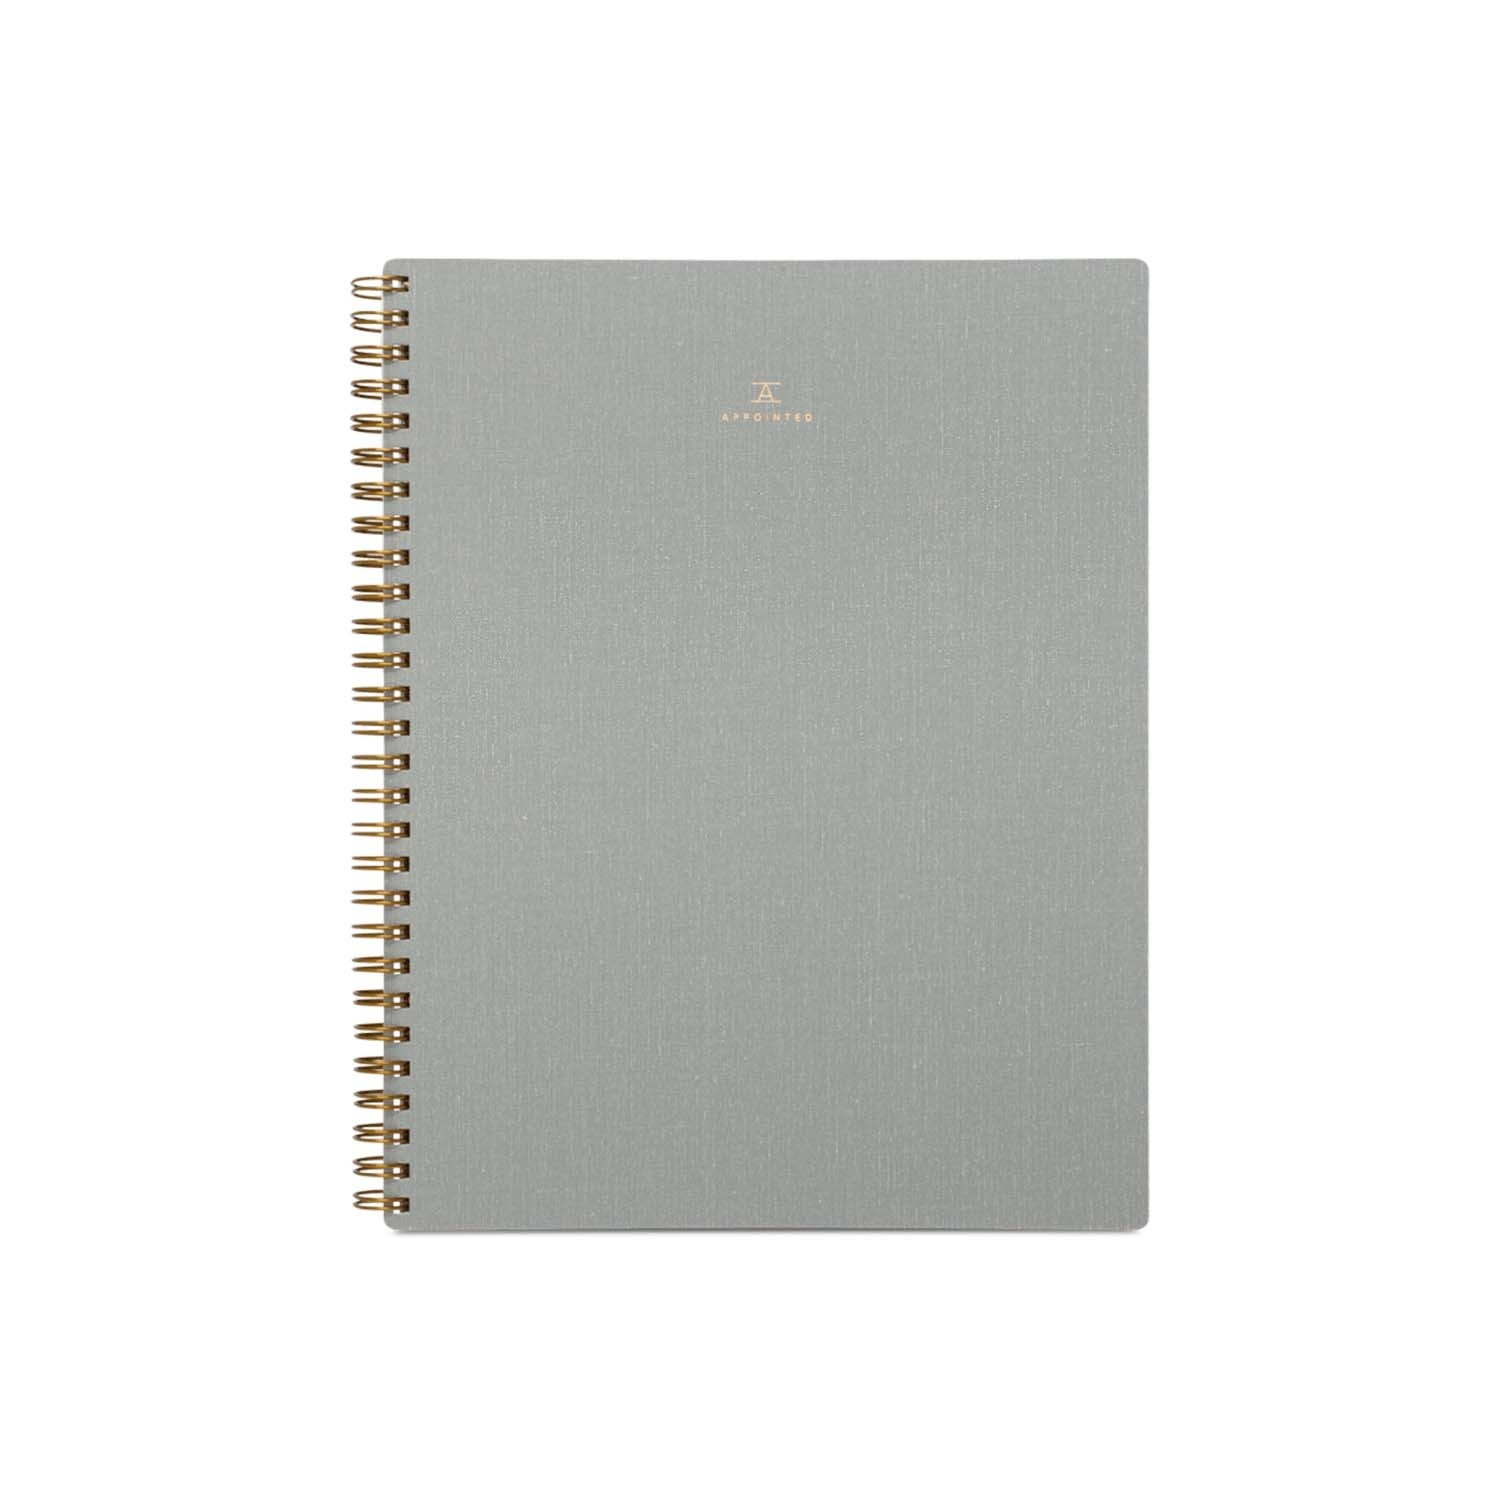 APPOINTED Cloth Spiral Notebook